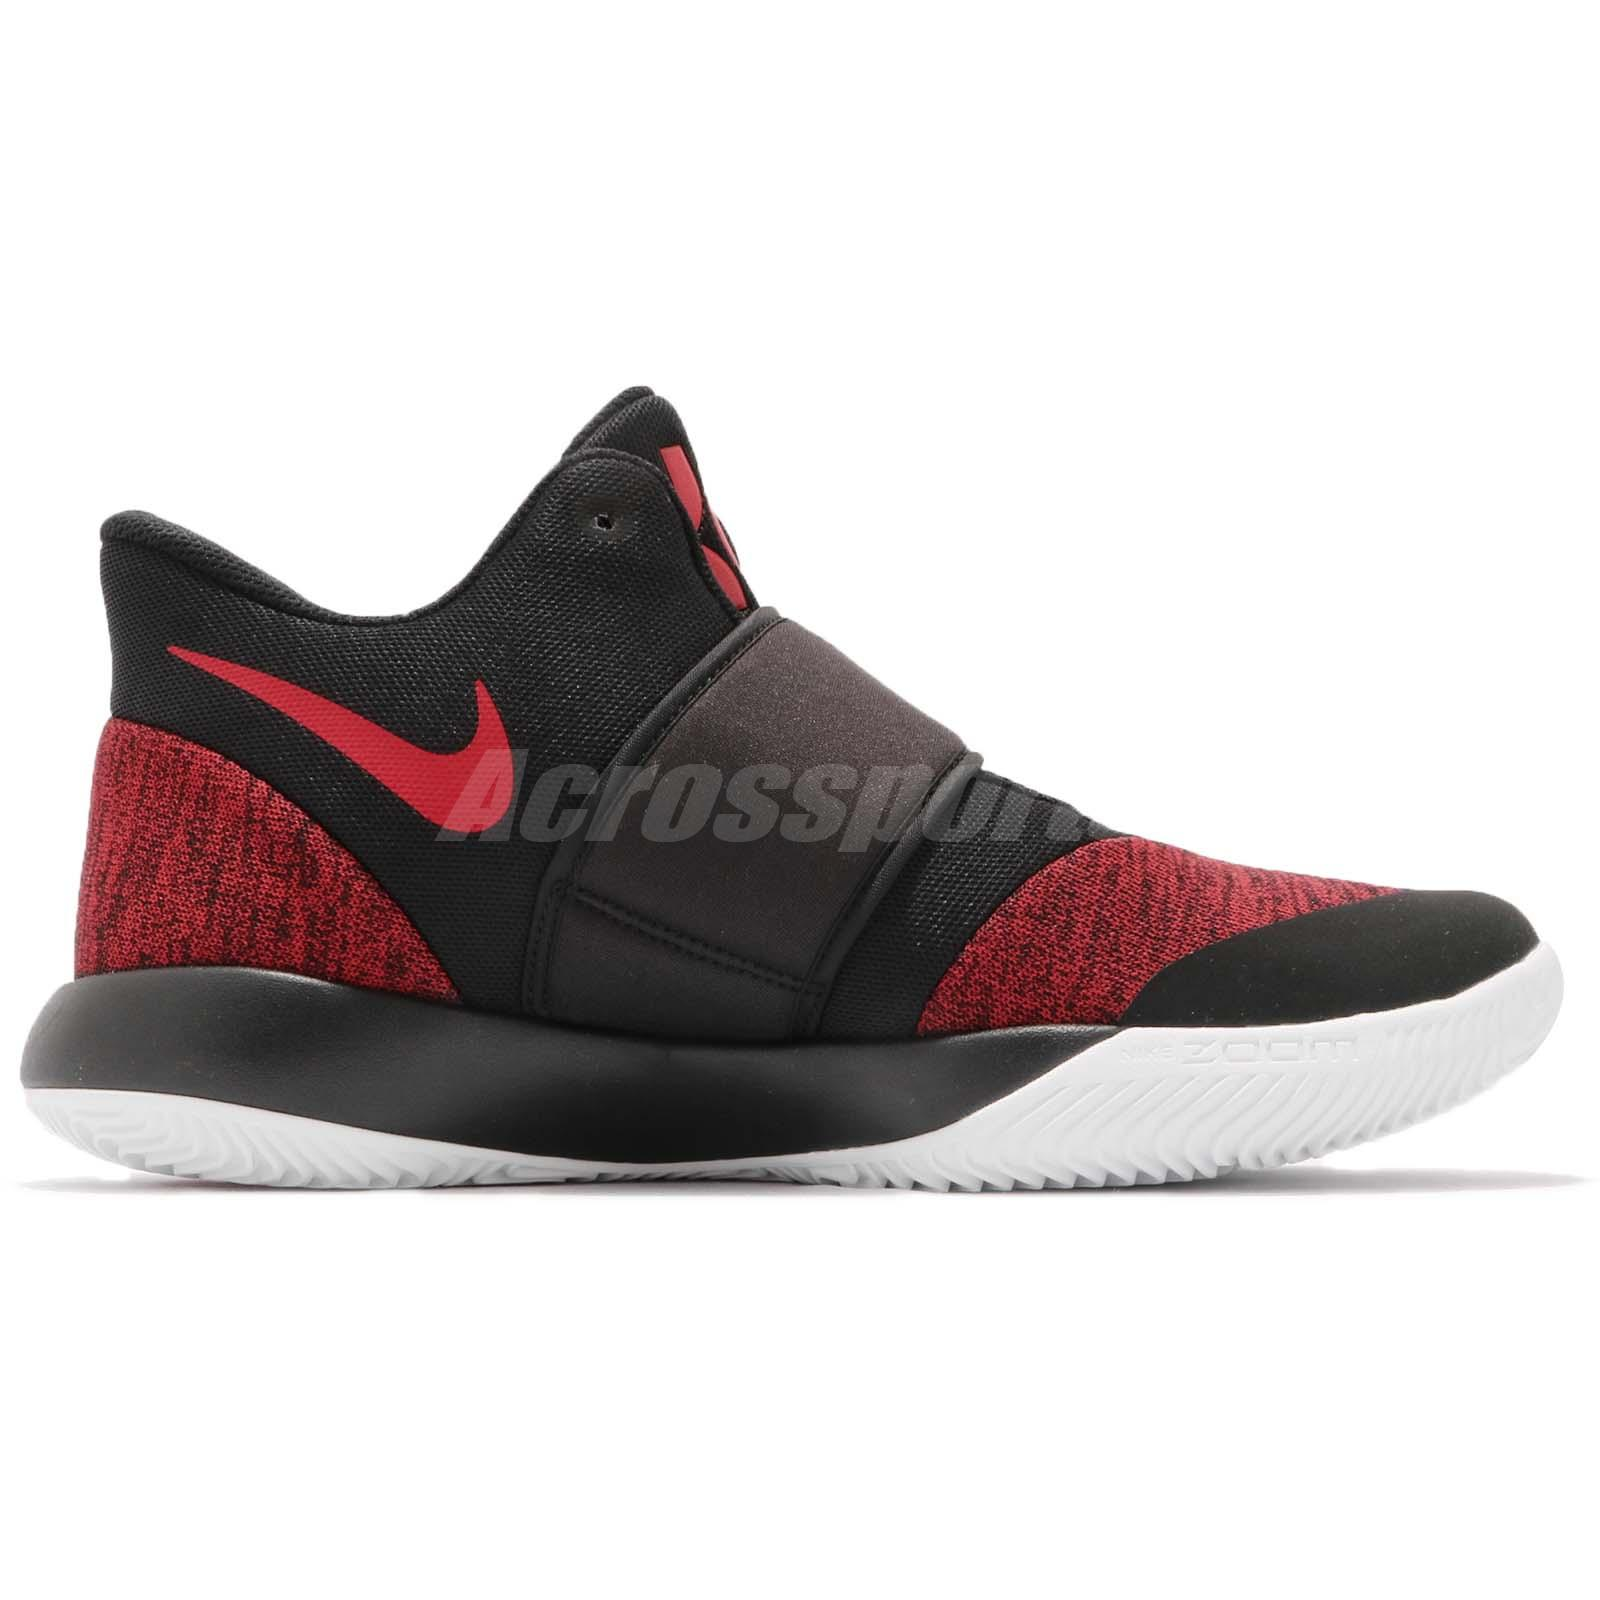 bdfbf1490897 Nike KD Trey 5 VI EP 6 Kevin Durant Black Red Men Basketball Shoes ...